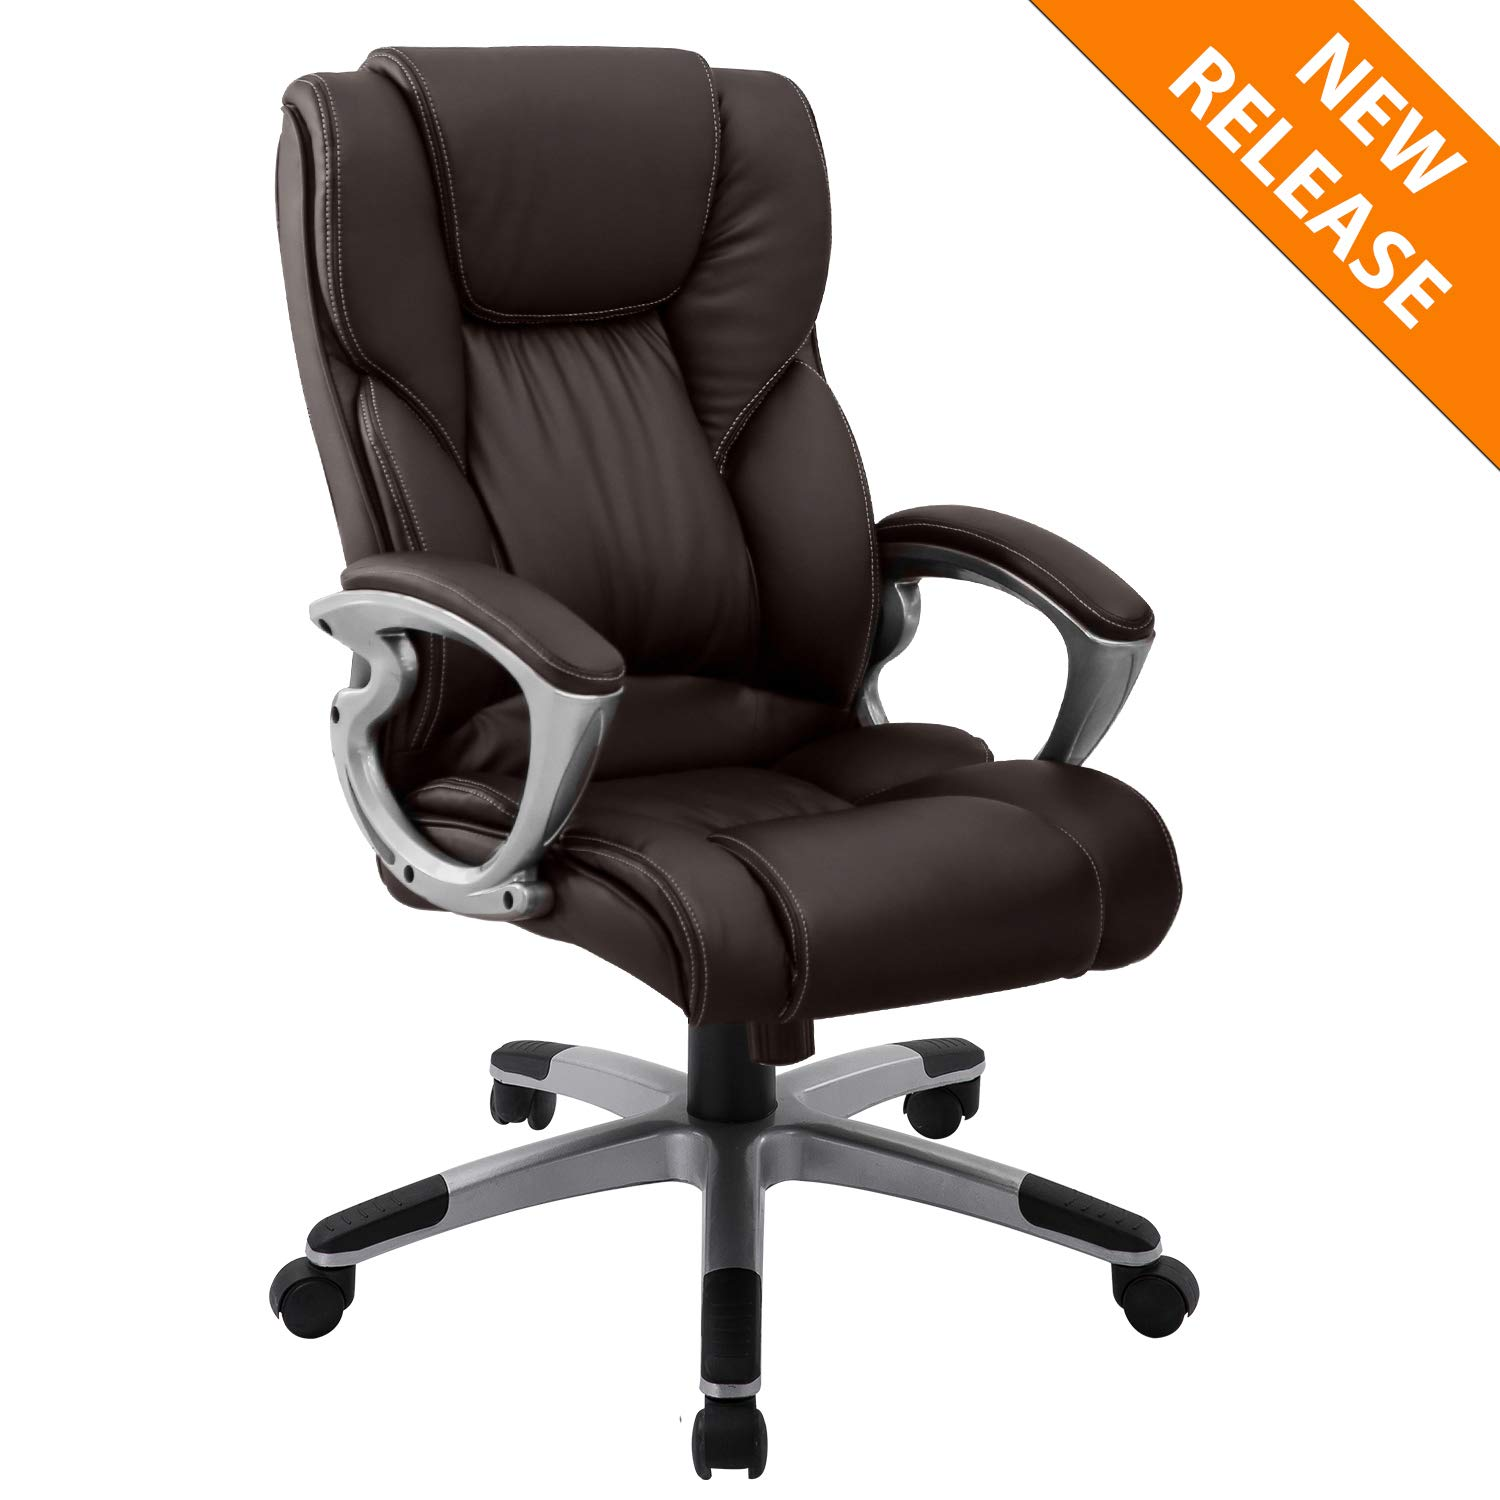 YAMASORO Leather Office Chair High Back Computer Gaming Desk Chair Executive Ergonomic Lumbar Support Brown